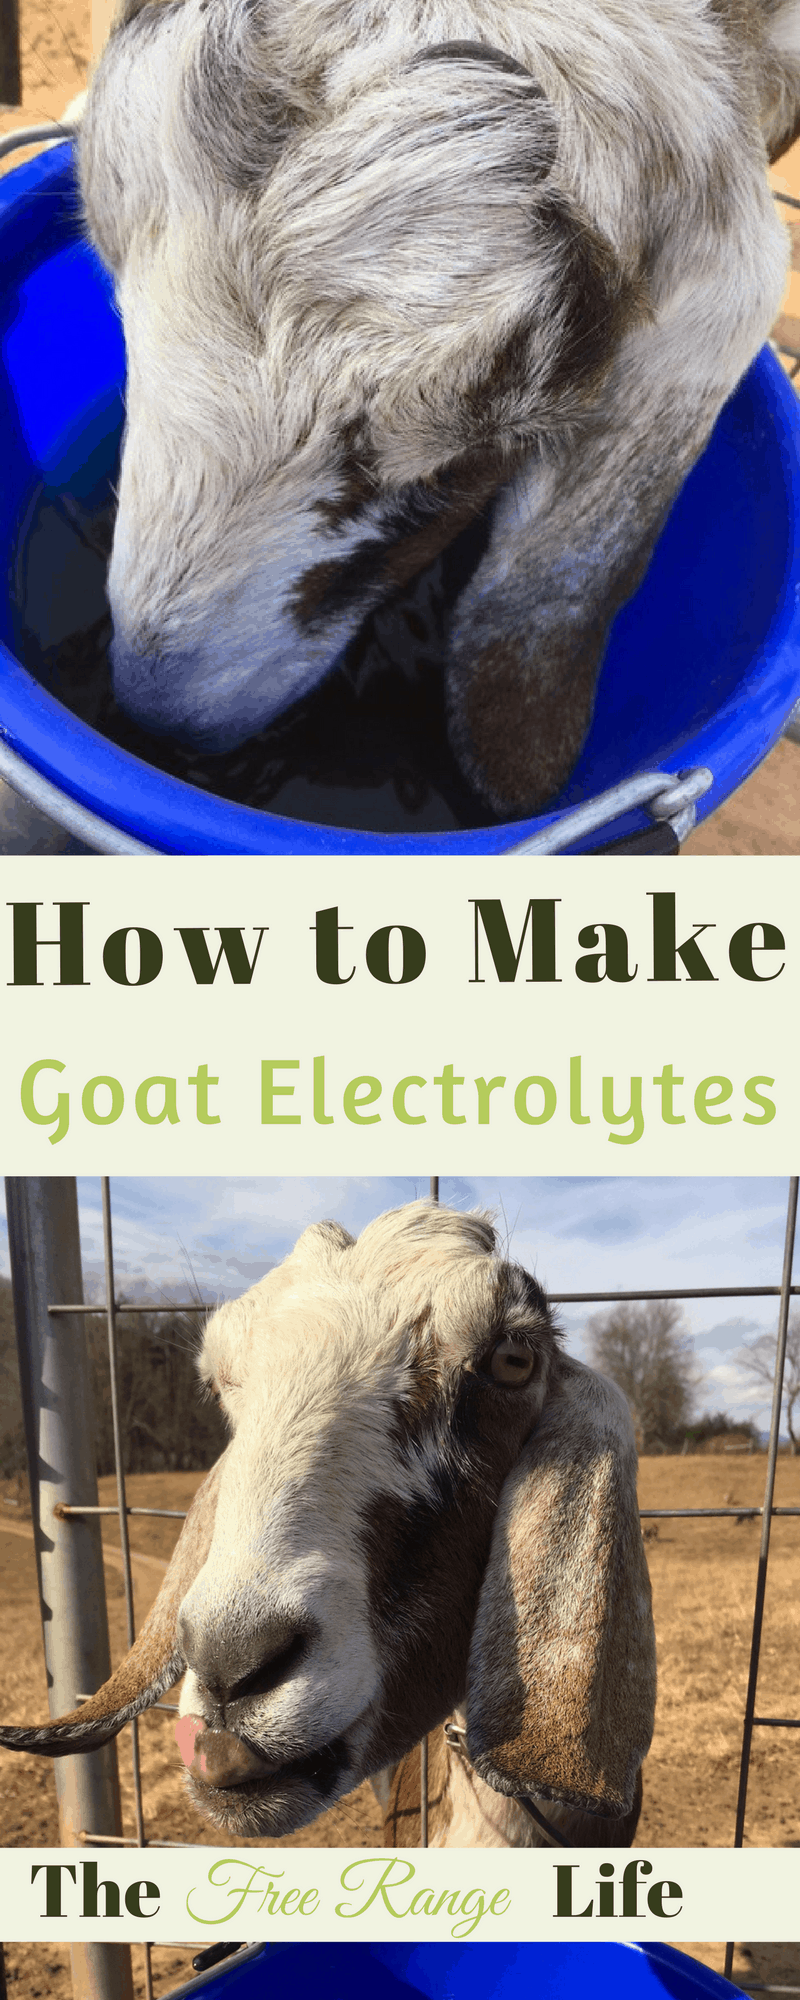 Electrolytes can rehydrate your goats when they are sick and get some nutrition back in their bodies. Learn how to make your own goat electrolytes at home!